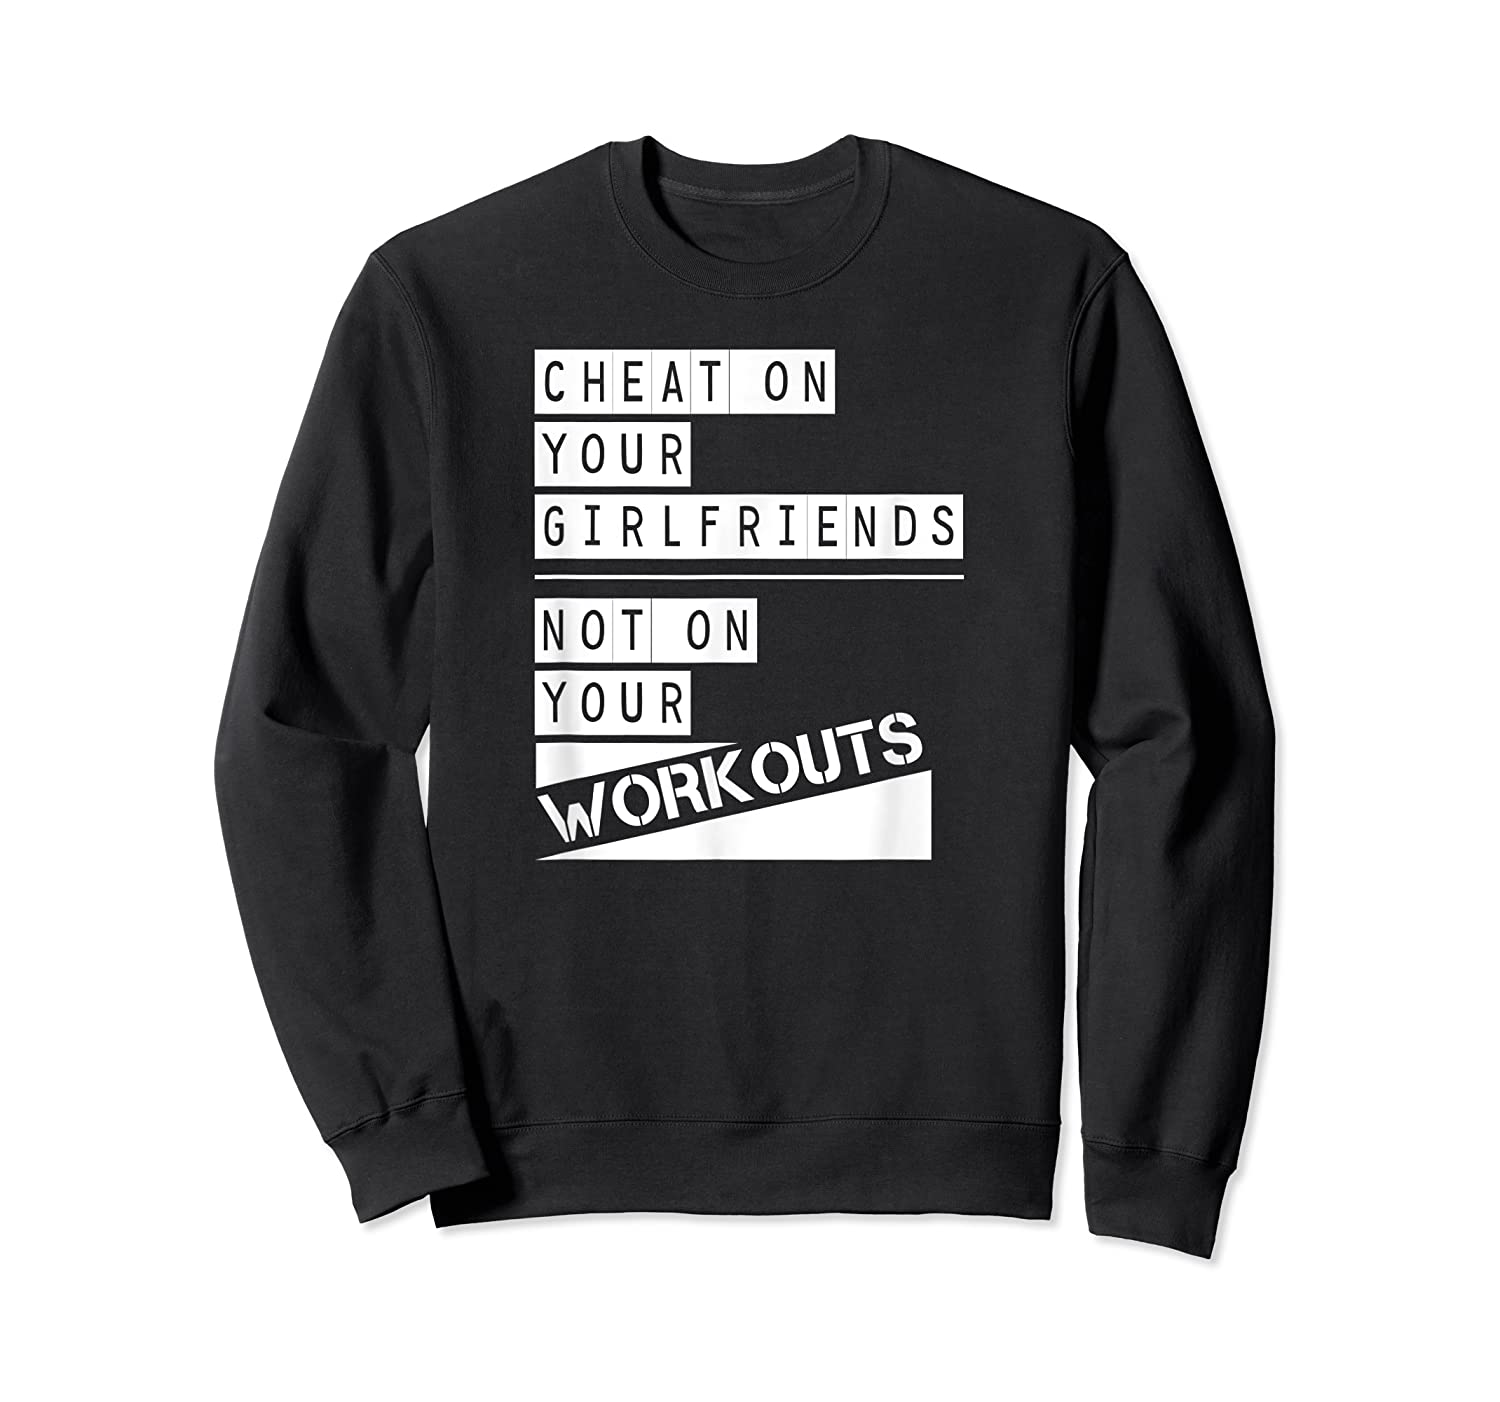 Don't Cheat On Your Workouts C213 Gym T Shirt Ness Mma Crewneck Sweater